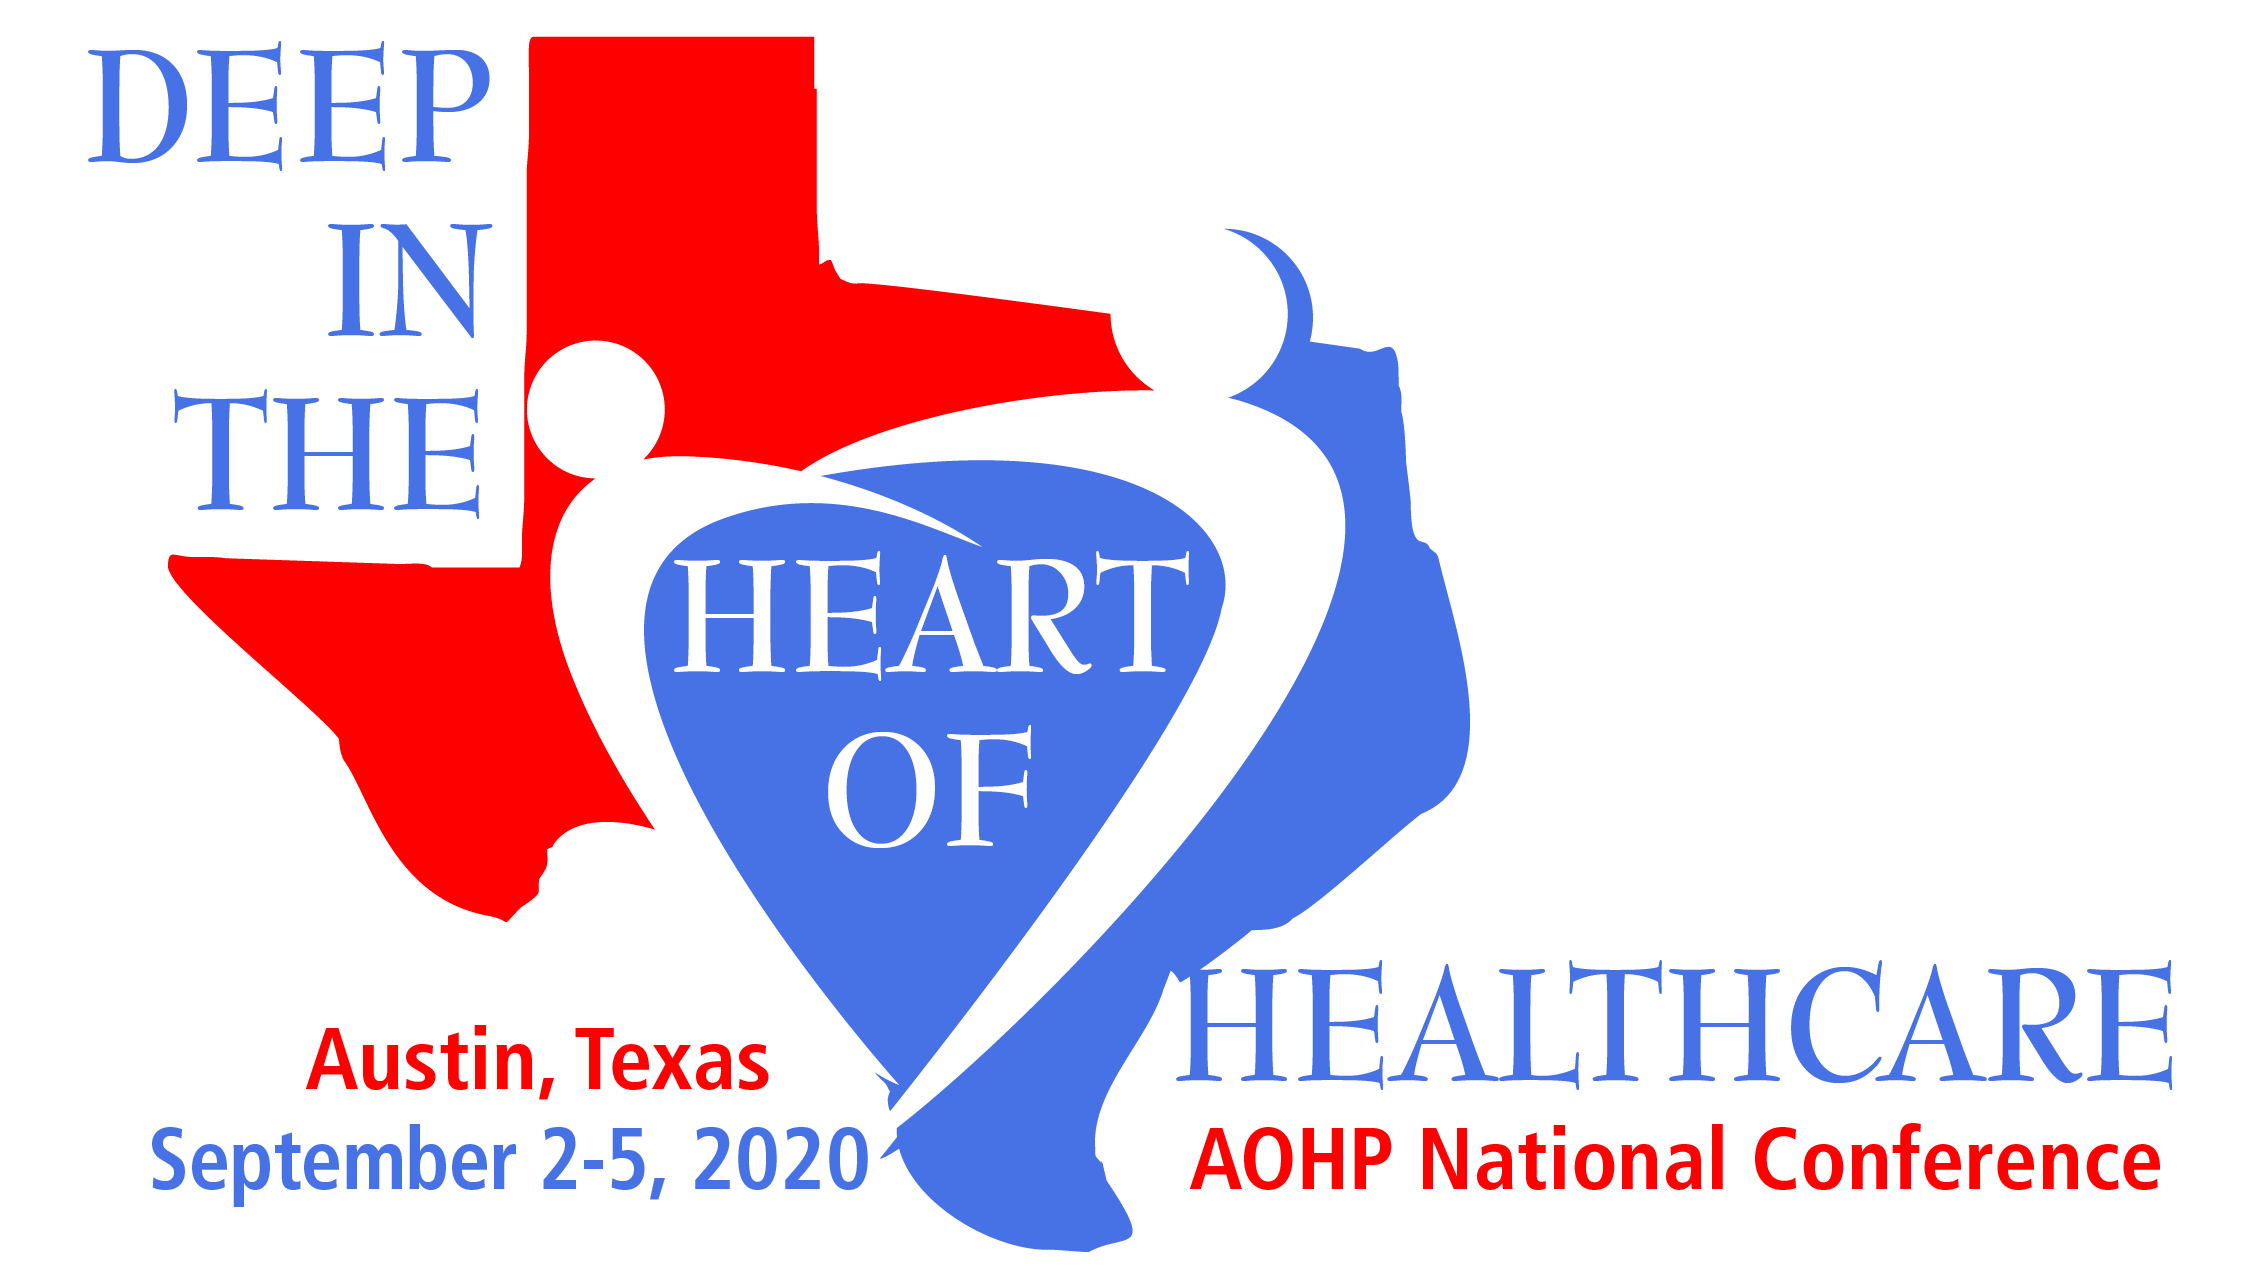 AOHP 2020 National Conference September 2-5, 2020 Austin Marriott Downtown 304 East Cesar Chavez Street Austin, TX 78701